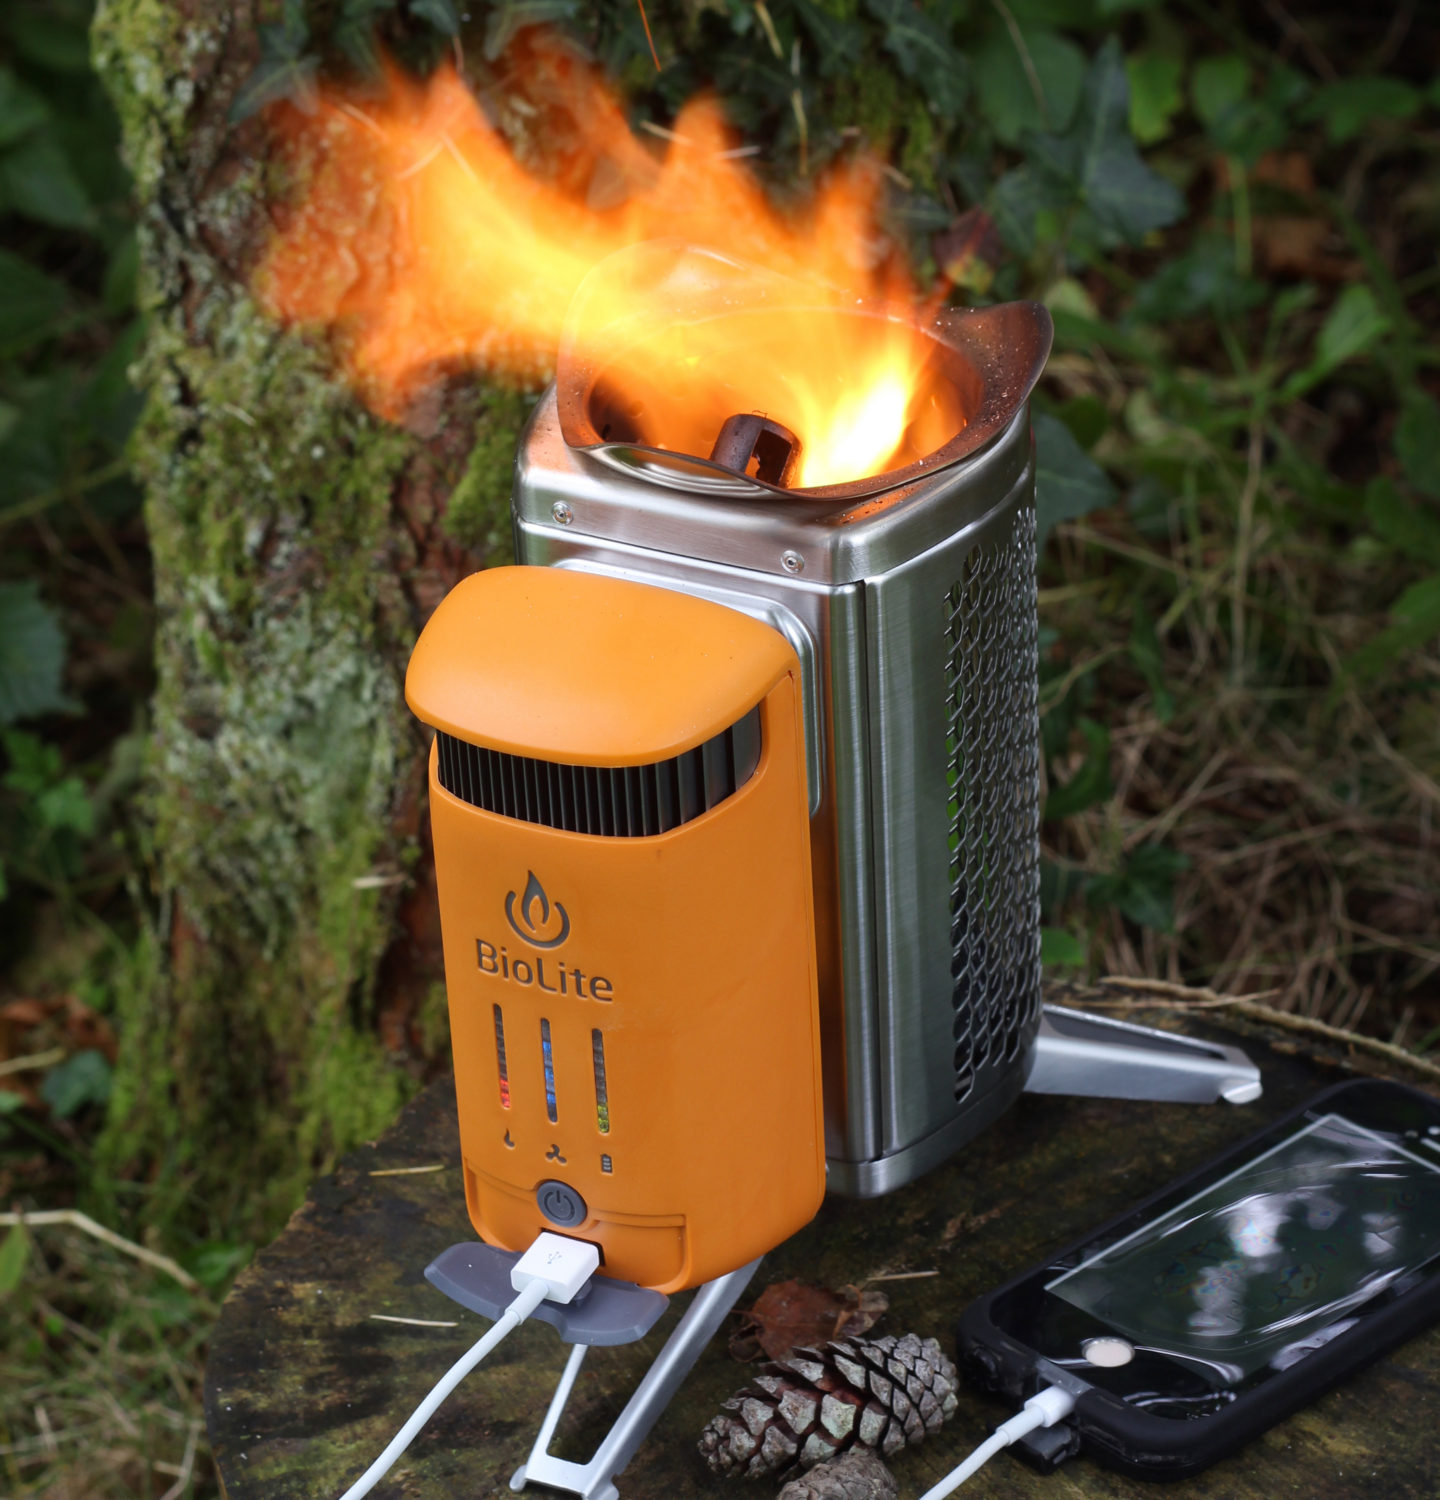 BioLite Campstove II Review